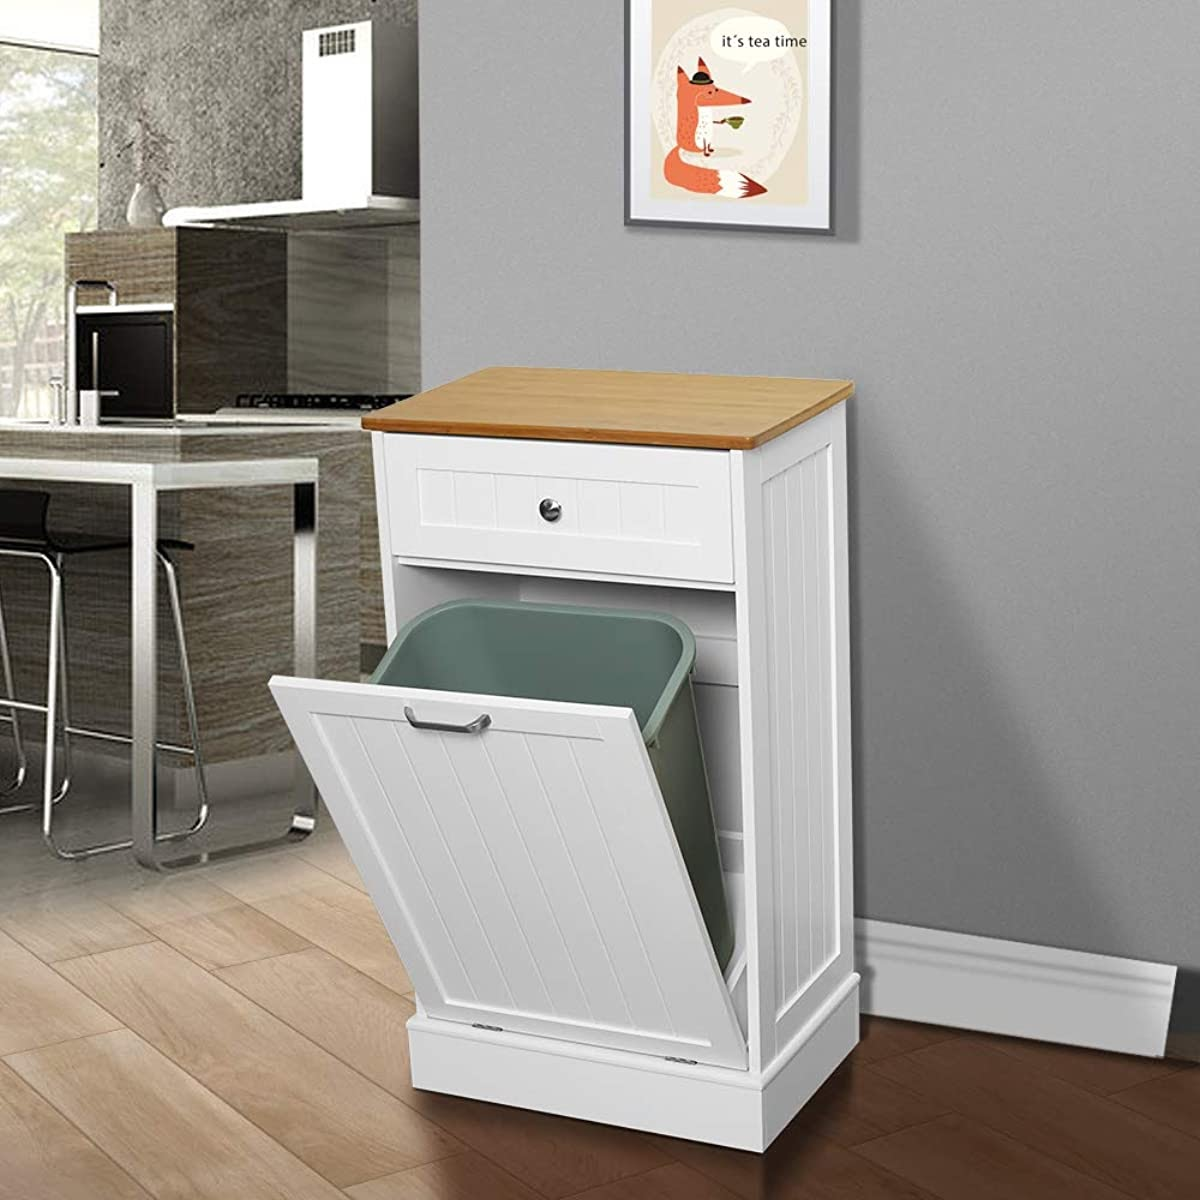 U-Eway Wooden Tilt-Out Trash Cabinet